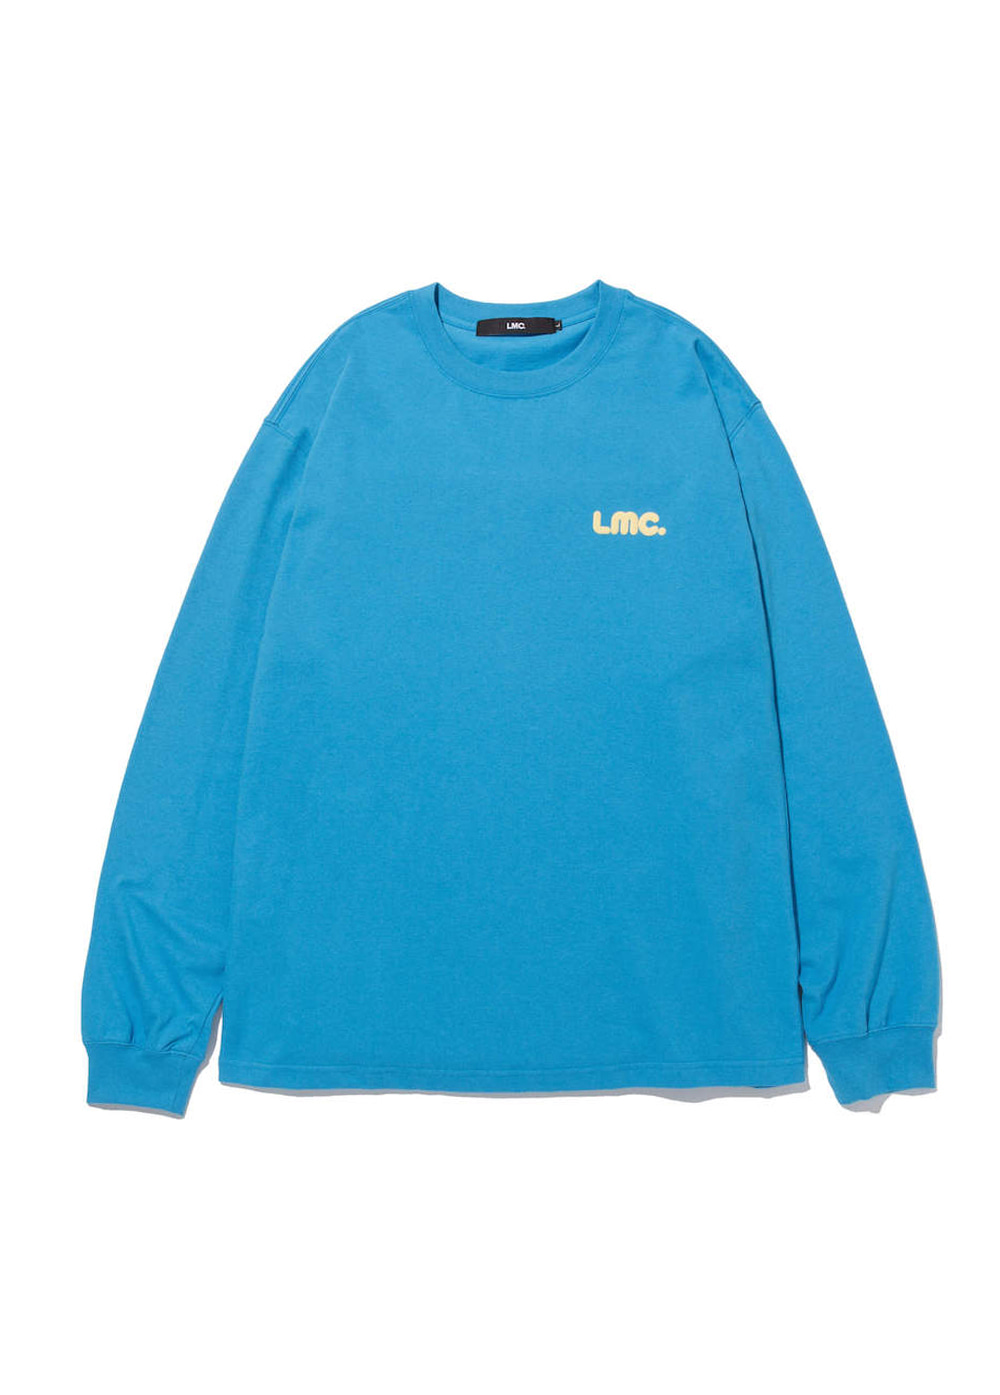 LMC BUBBLE LONG SLV TEE sky blue